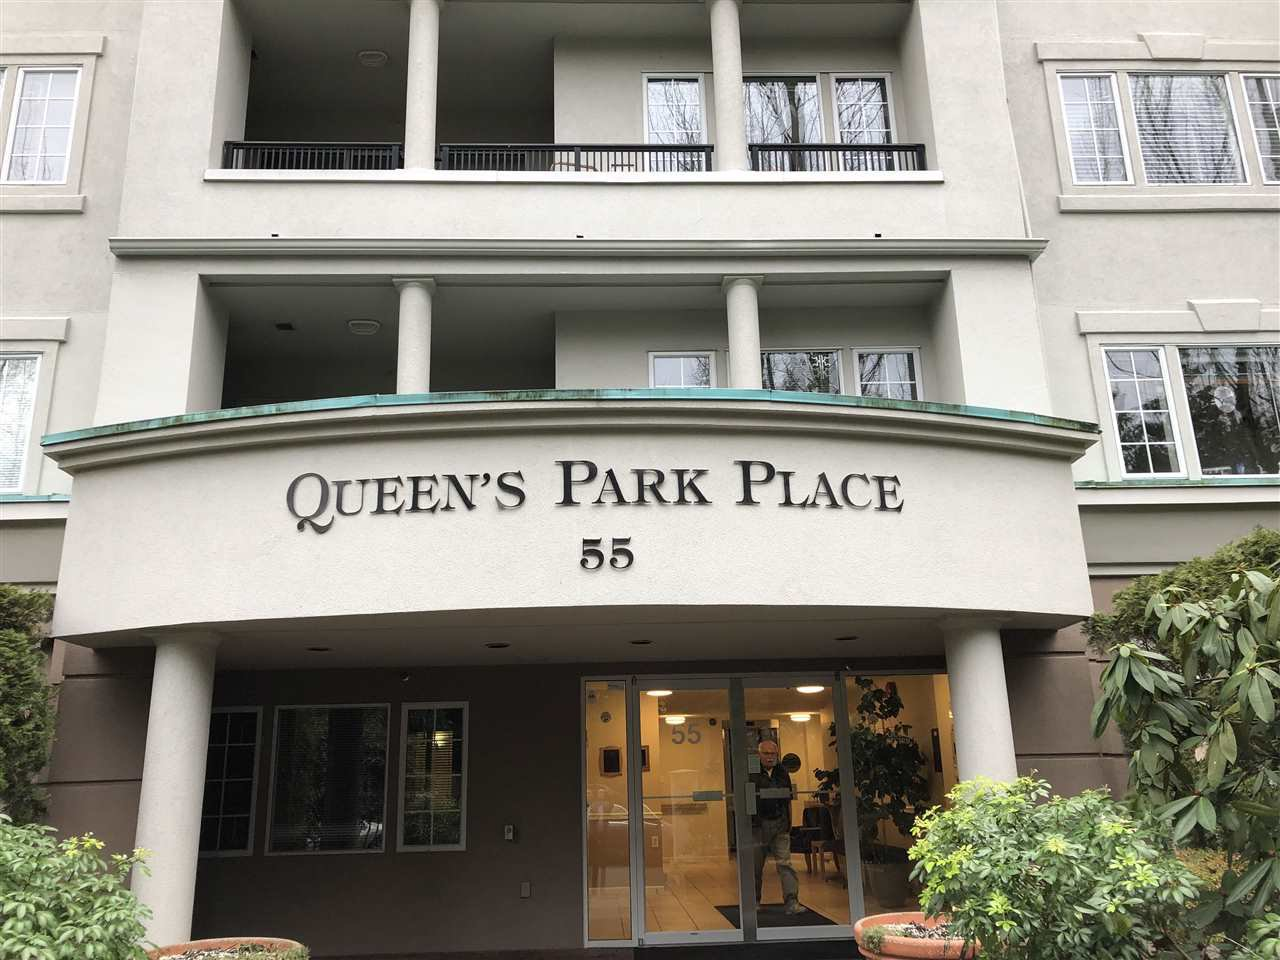 """Main Photo: 211 55 BLACKBERRY Drive in New Westminster: Fraserview NW Condo for sale in """"Queens Park Place"""" : MLS®# R2332695"""